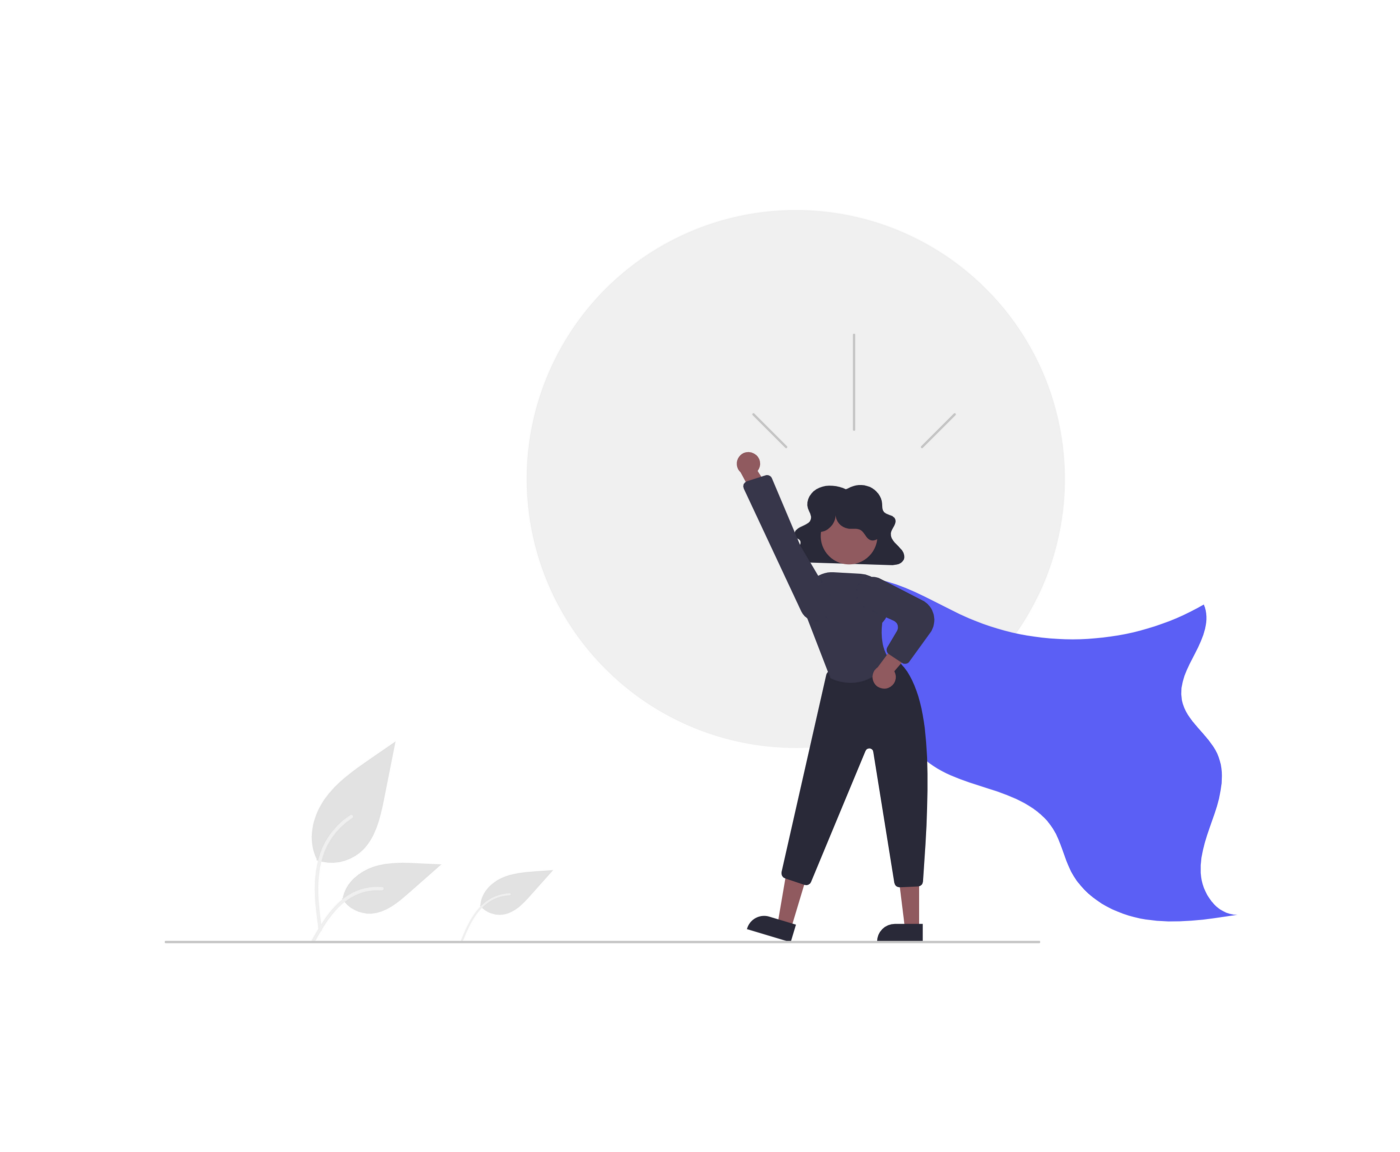 A person wearing a long flowing cape raises their fist in triumph.